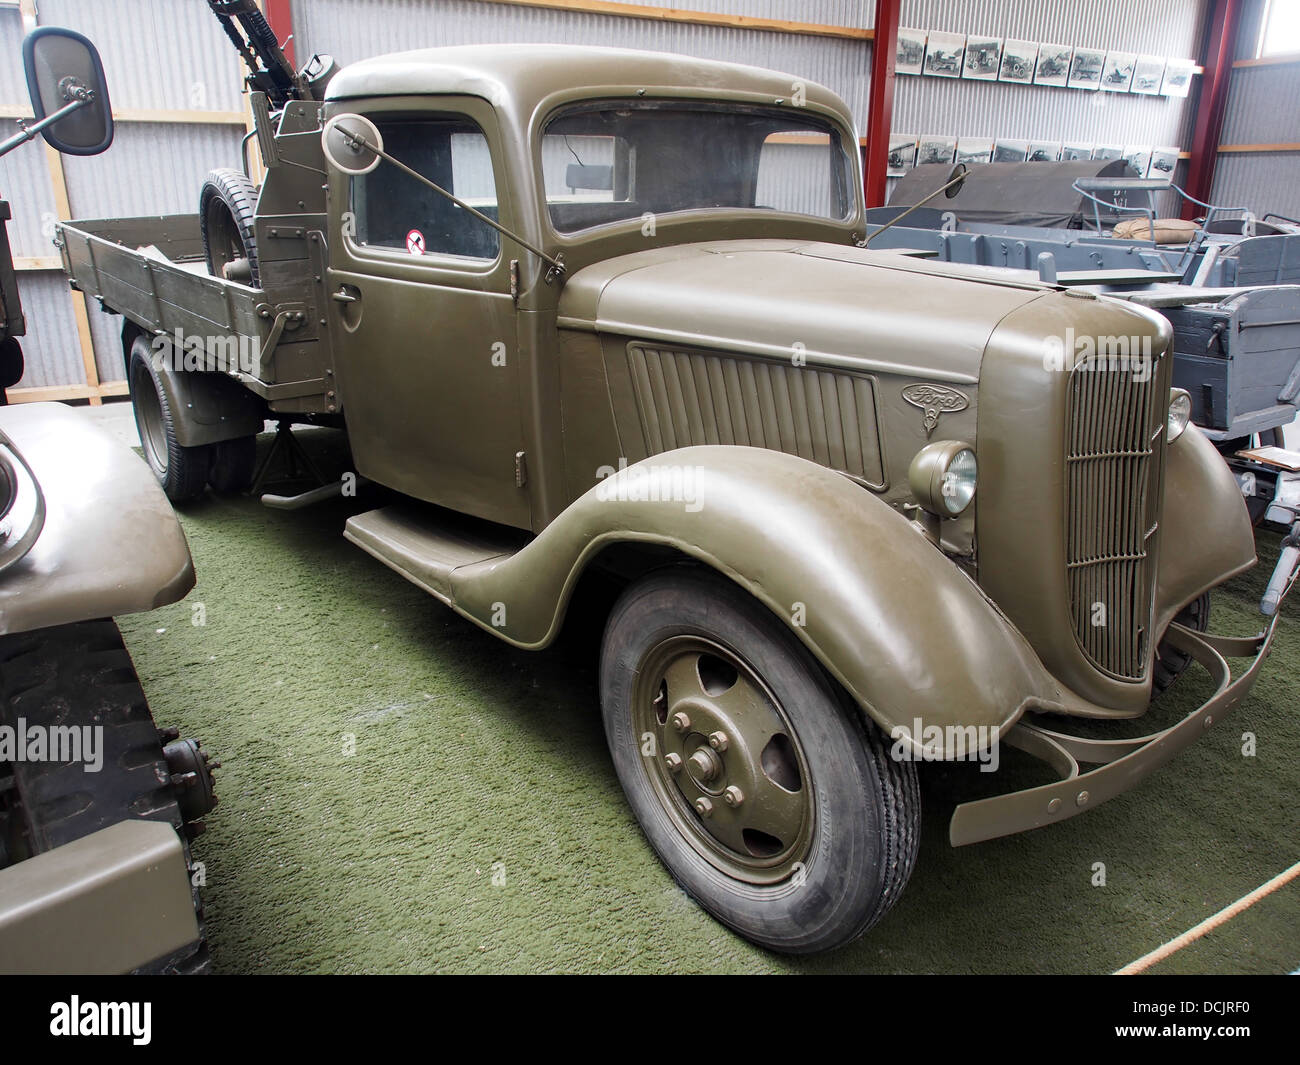 1939 Ford V8, photographed at the Aalborg Forsvars- og Garnisonsmuseum - Stock Image